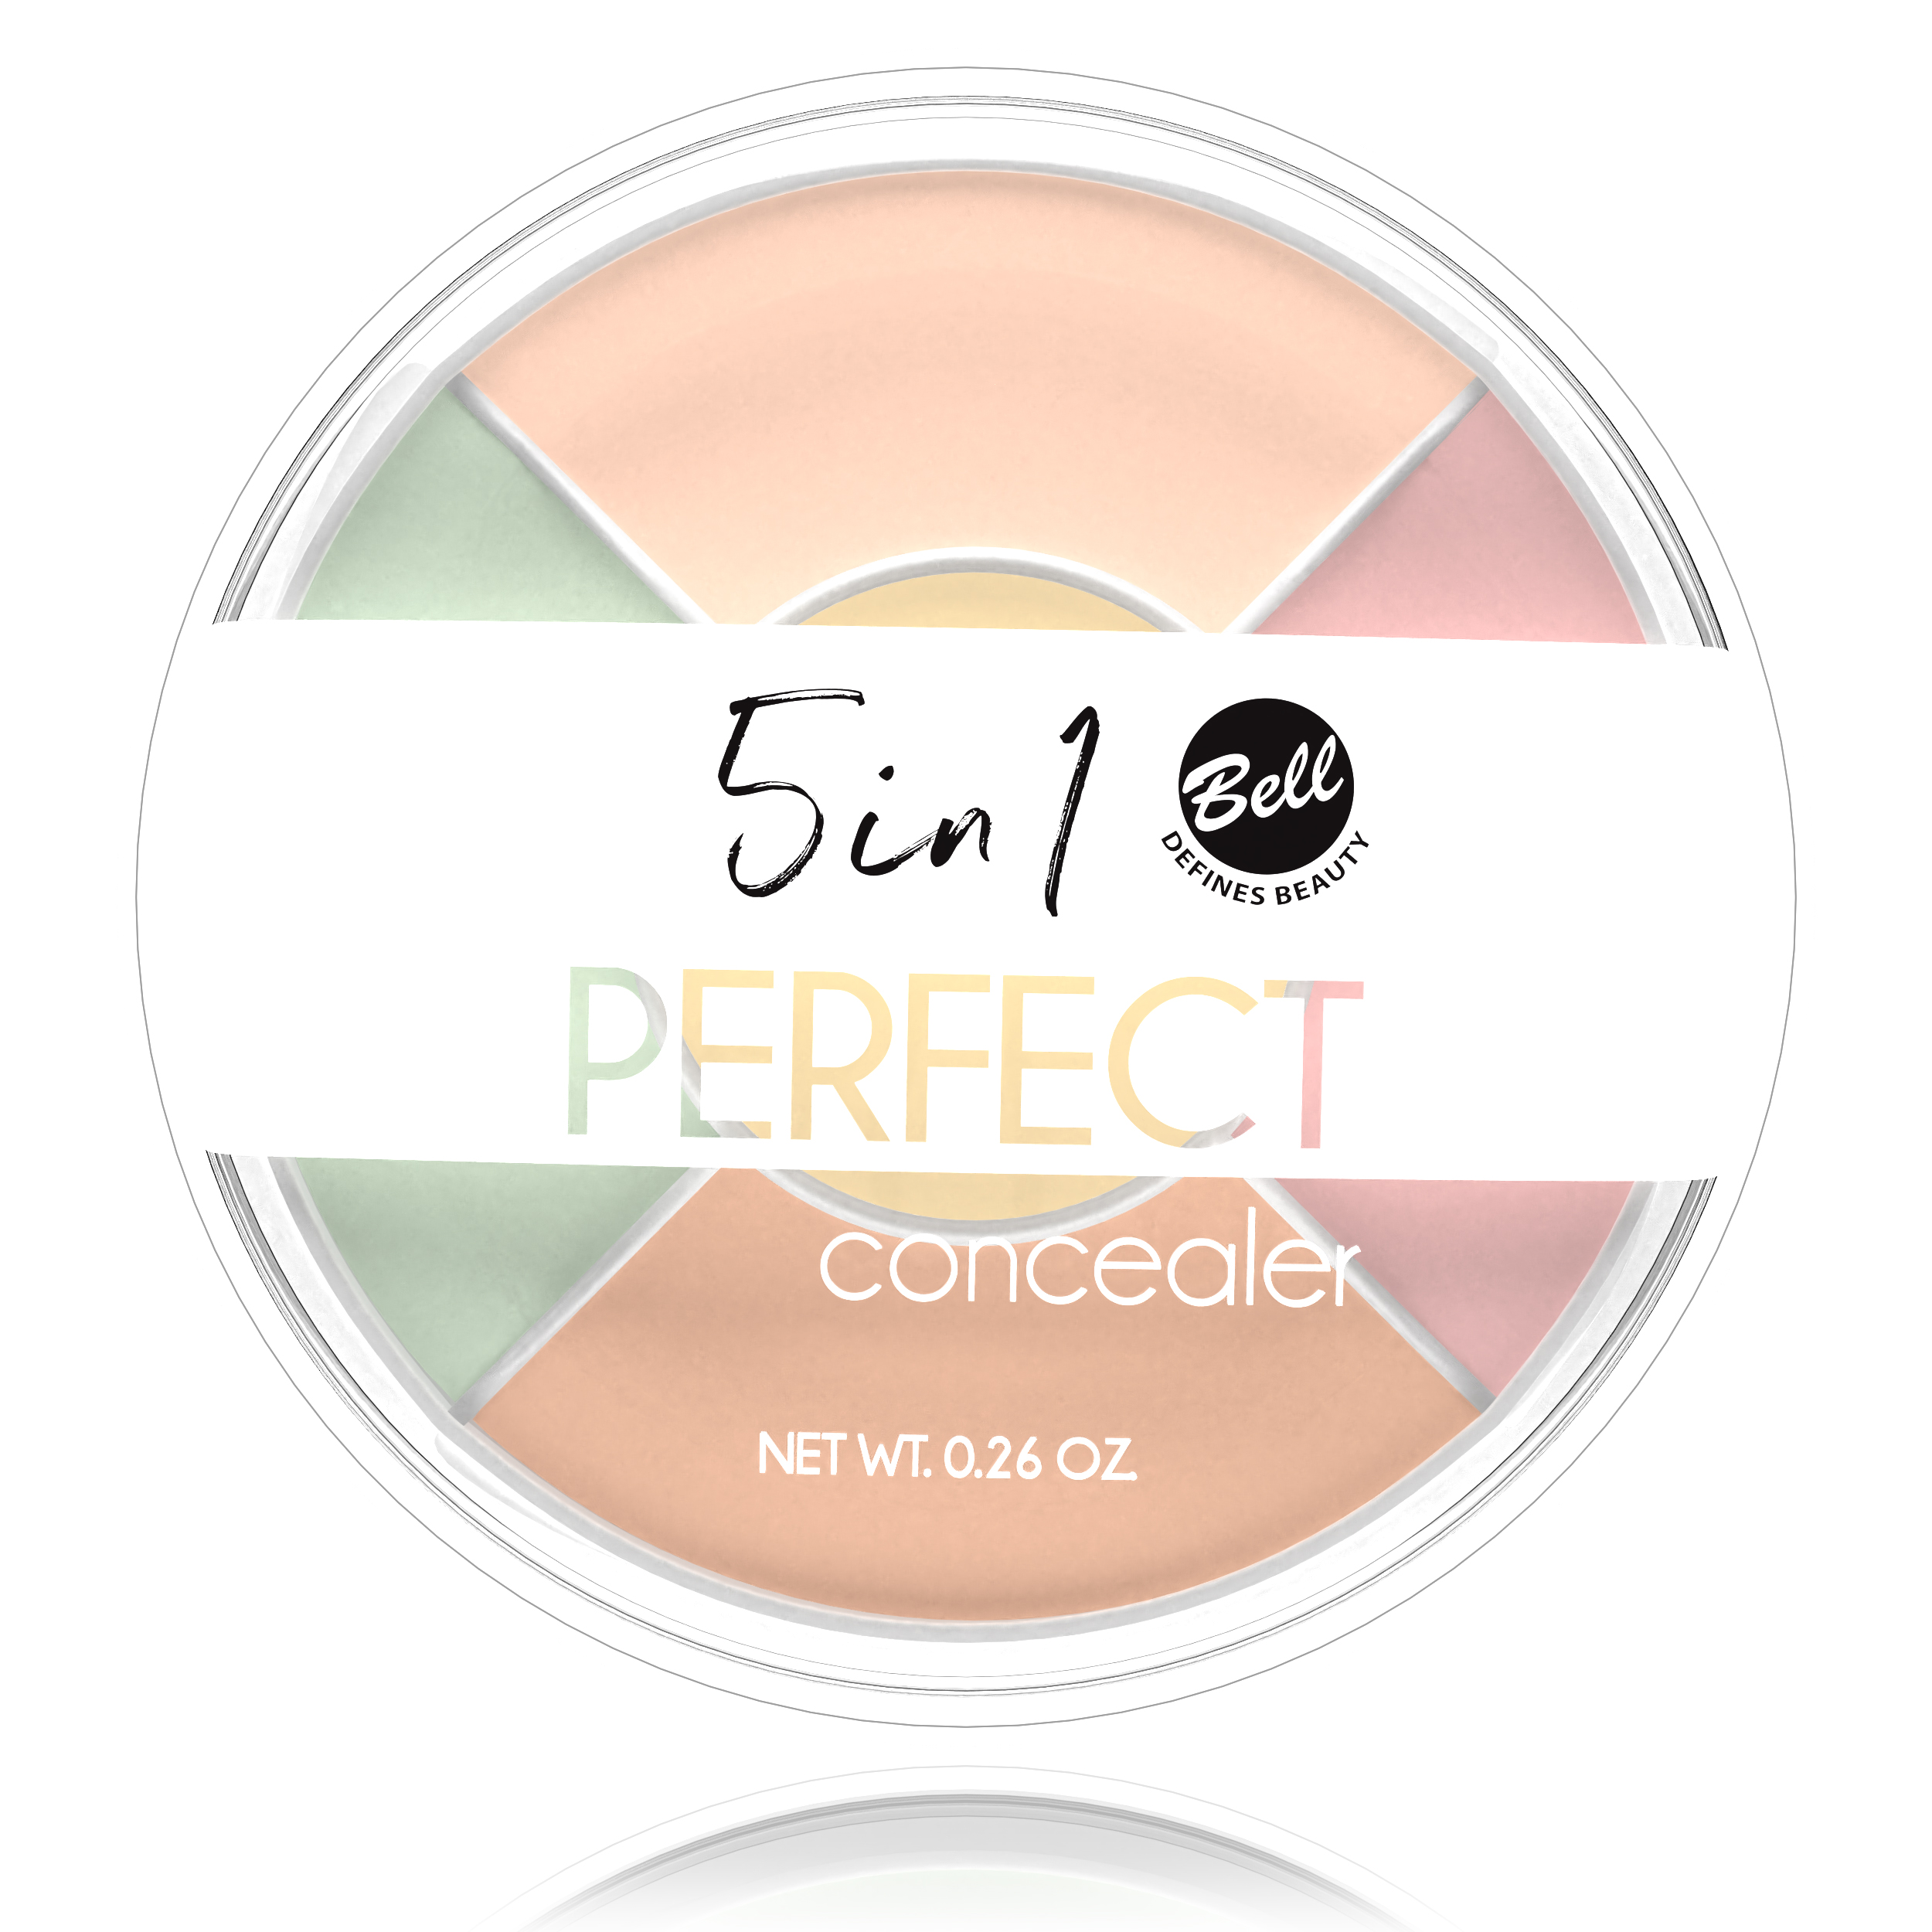 5in1 Perfect Concealer